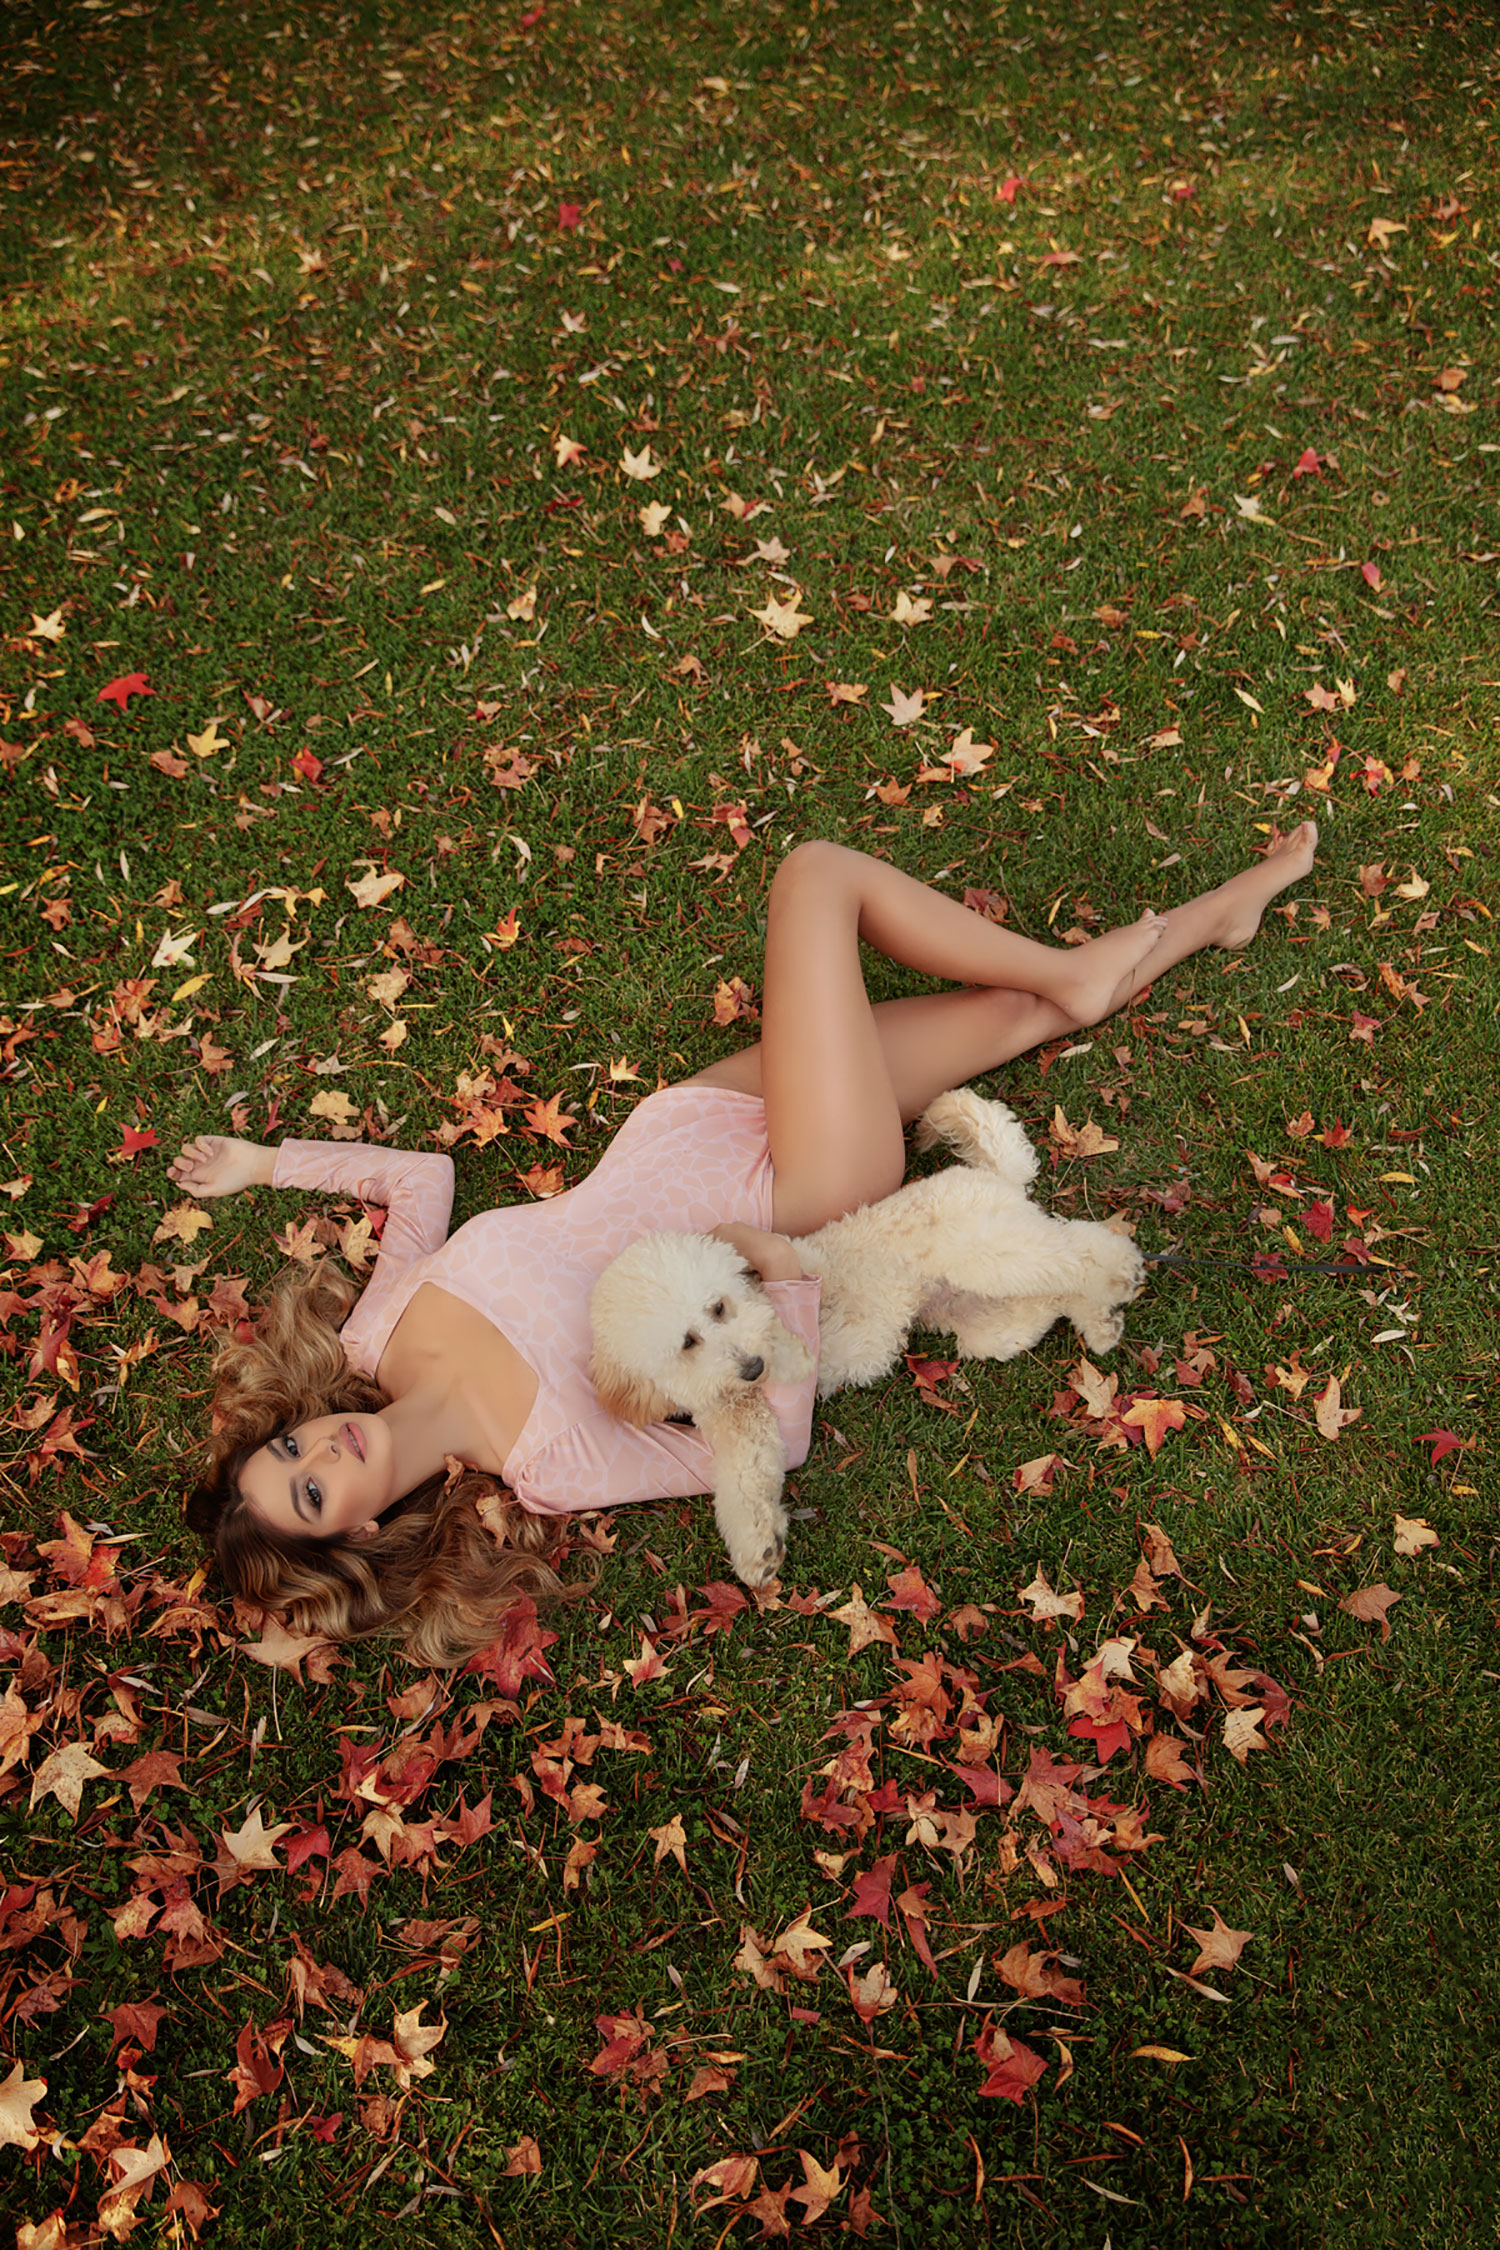 Model laying on the ground with a dog calendar photos